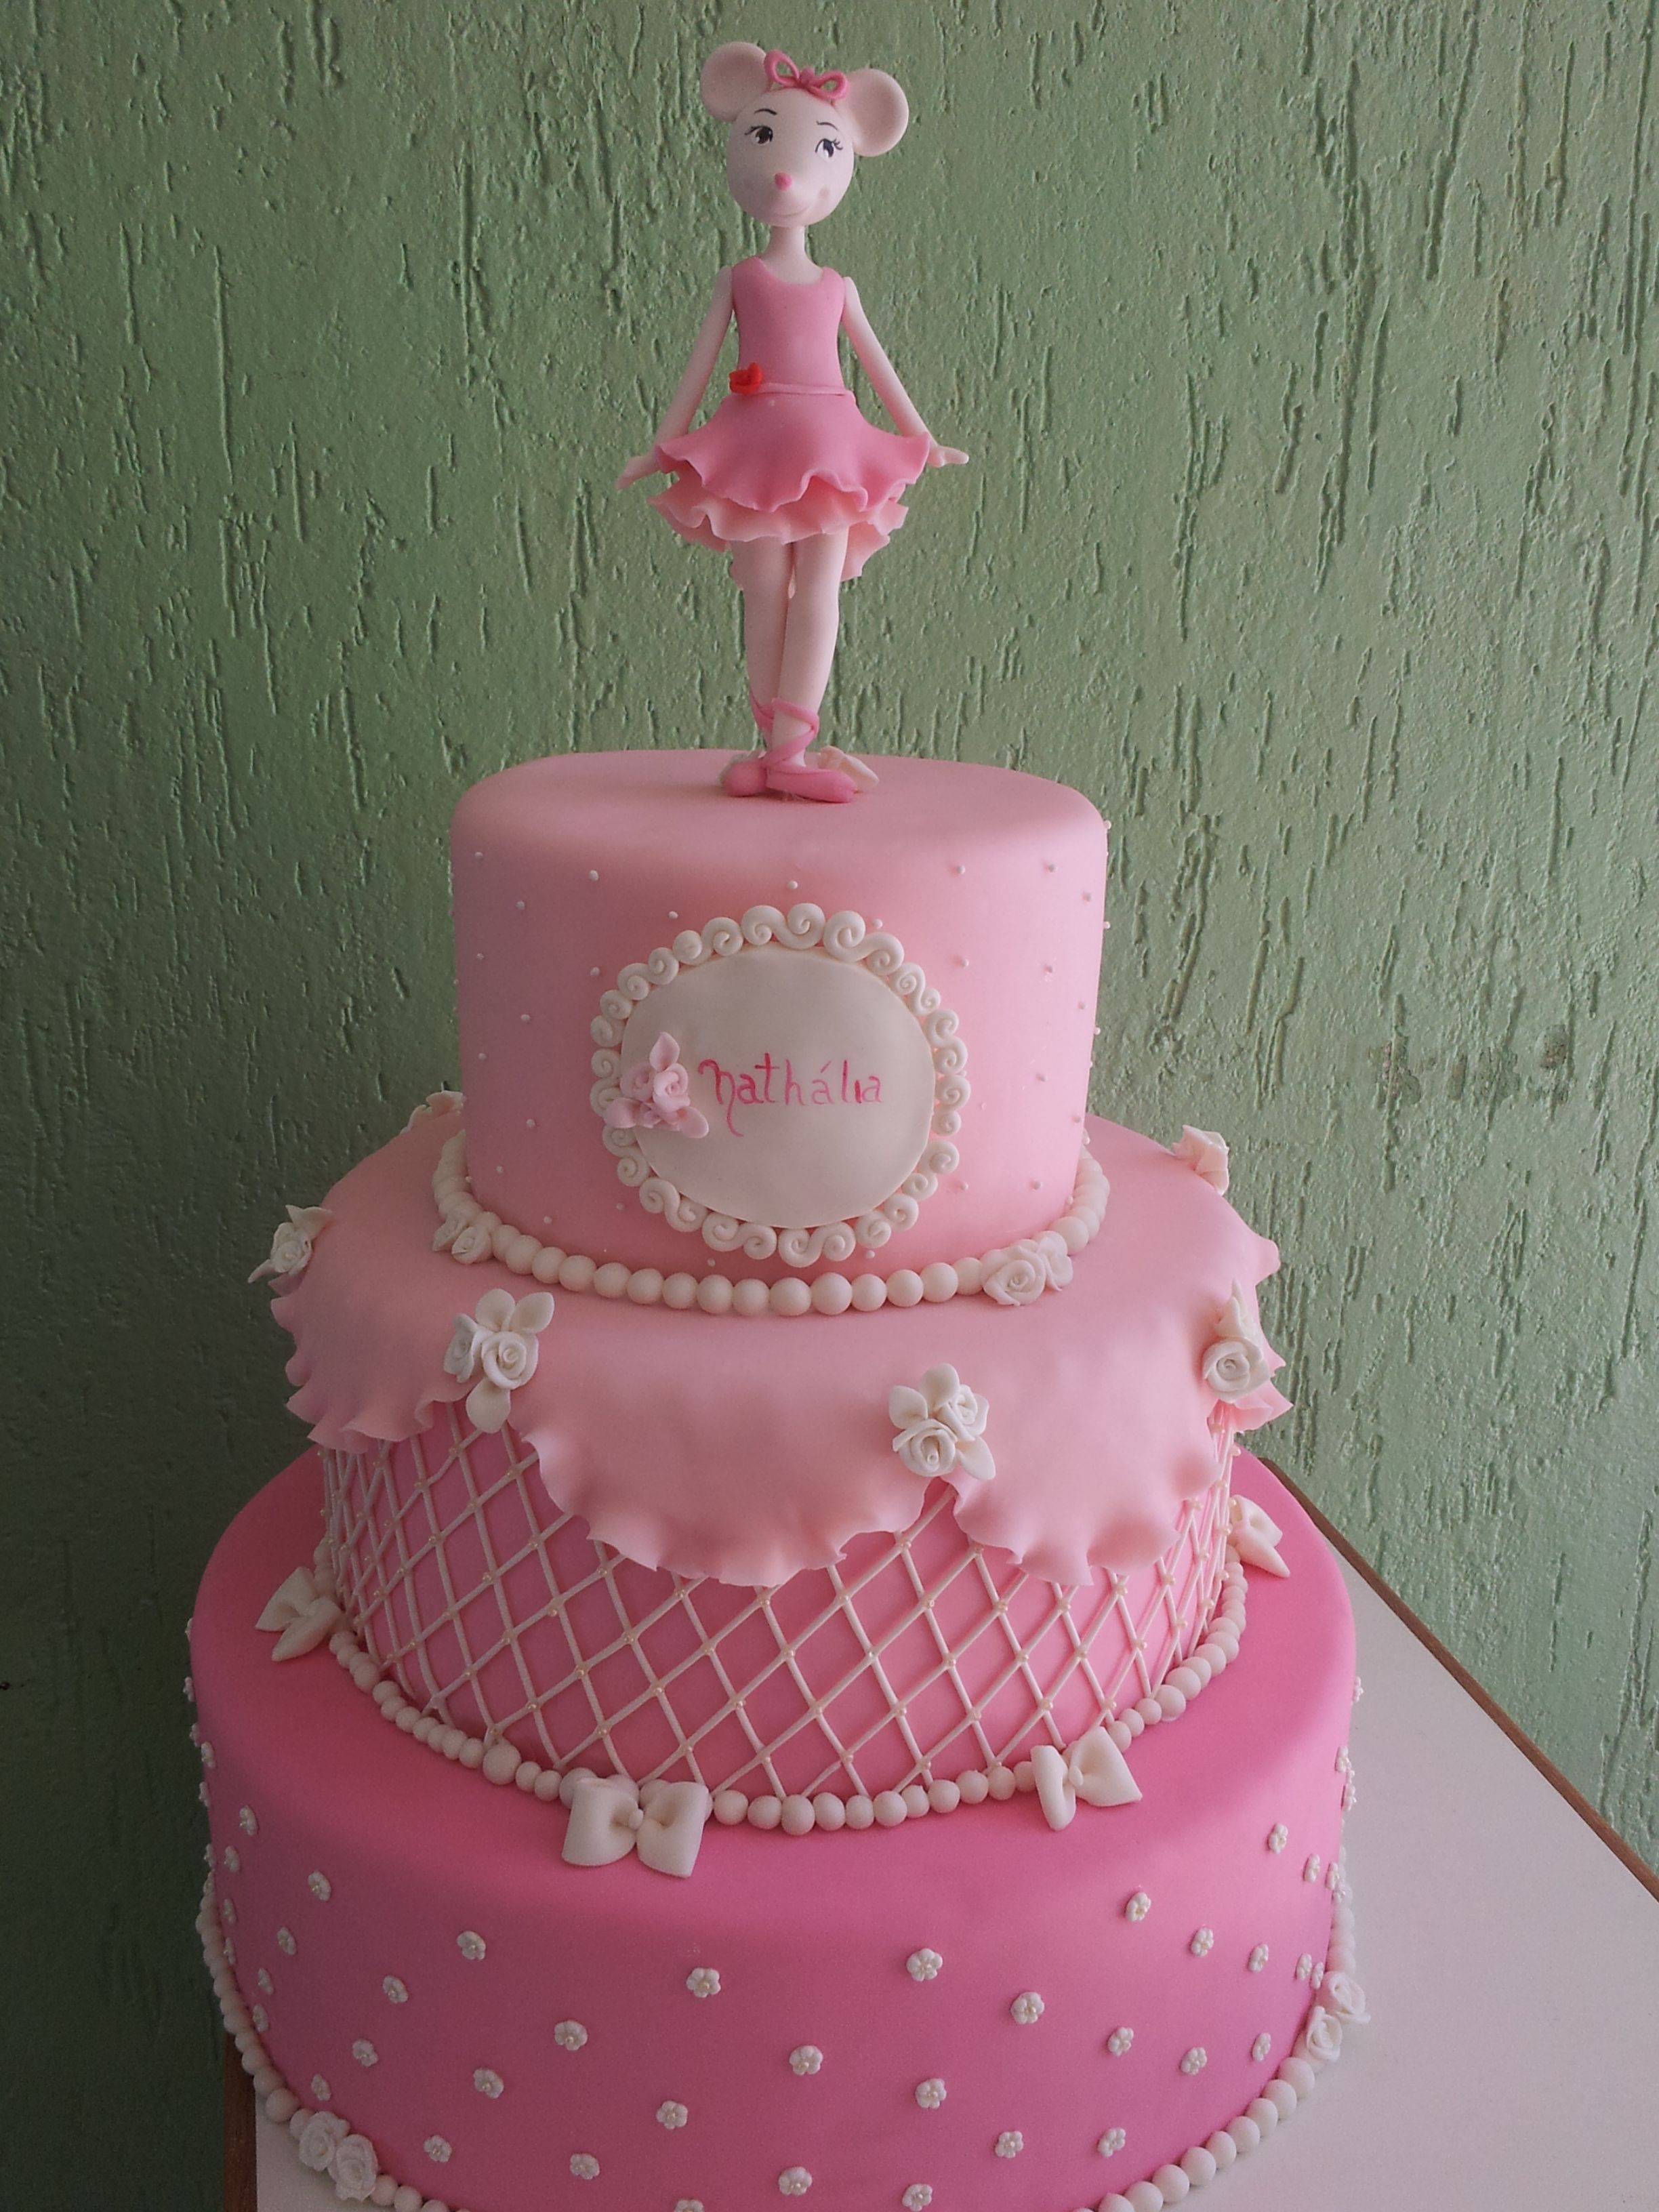 Ballerina Birthday Cake Too Big For Our Plan And Replace Angelina Ballerina Party Ideas